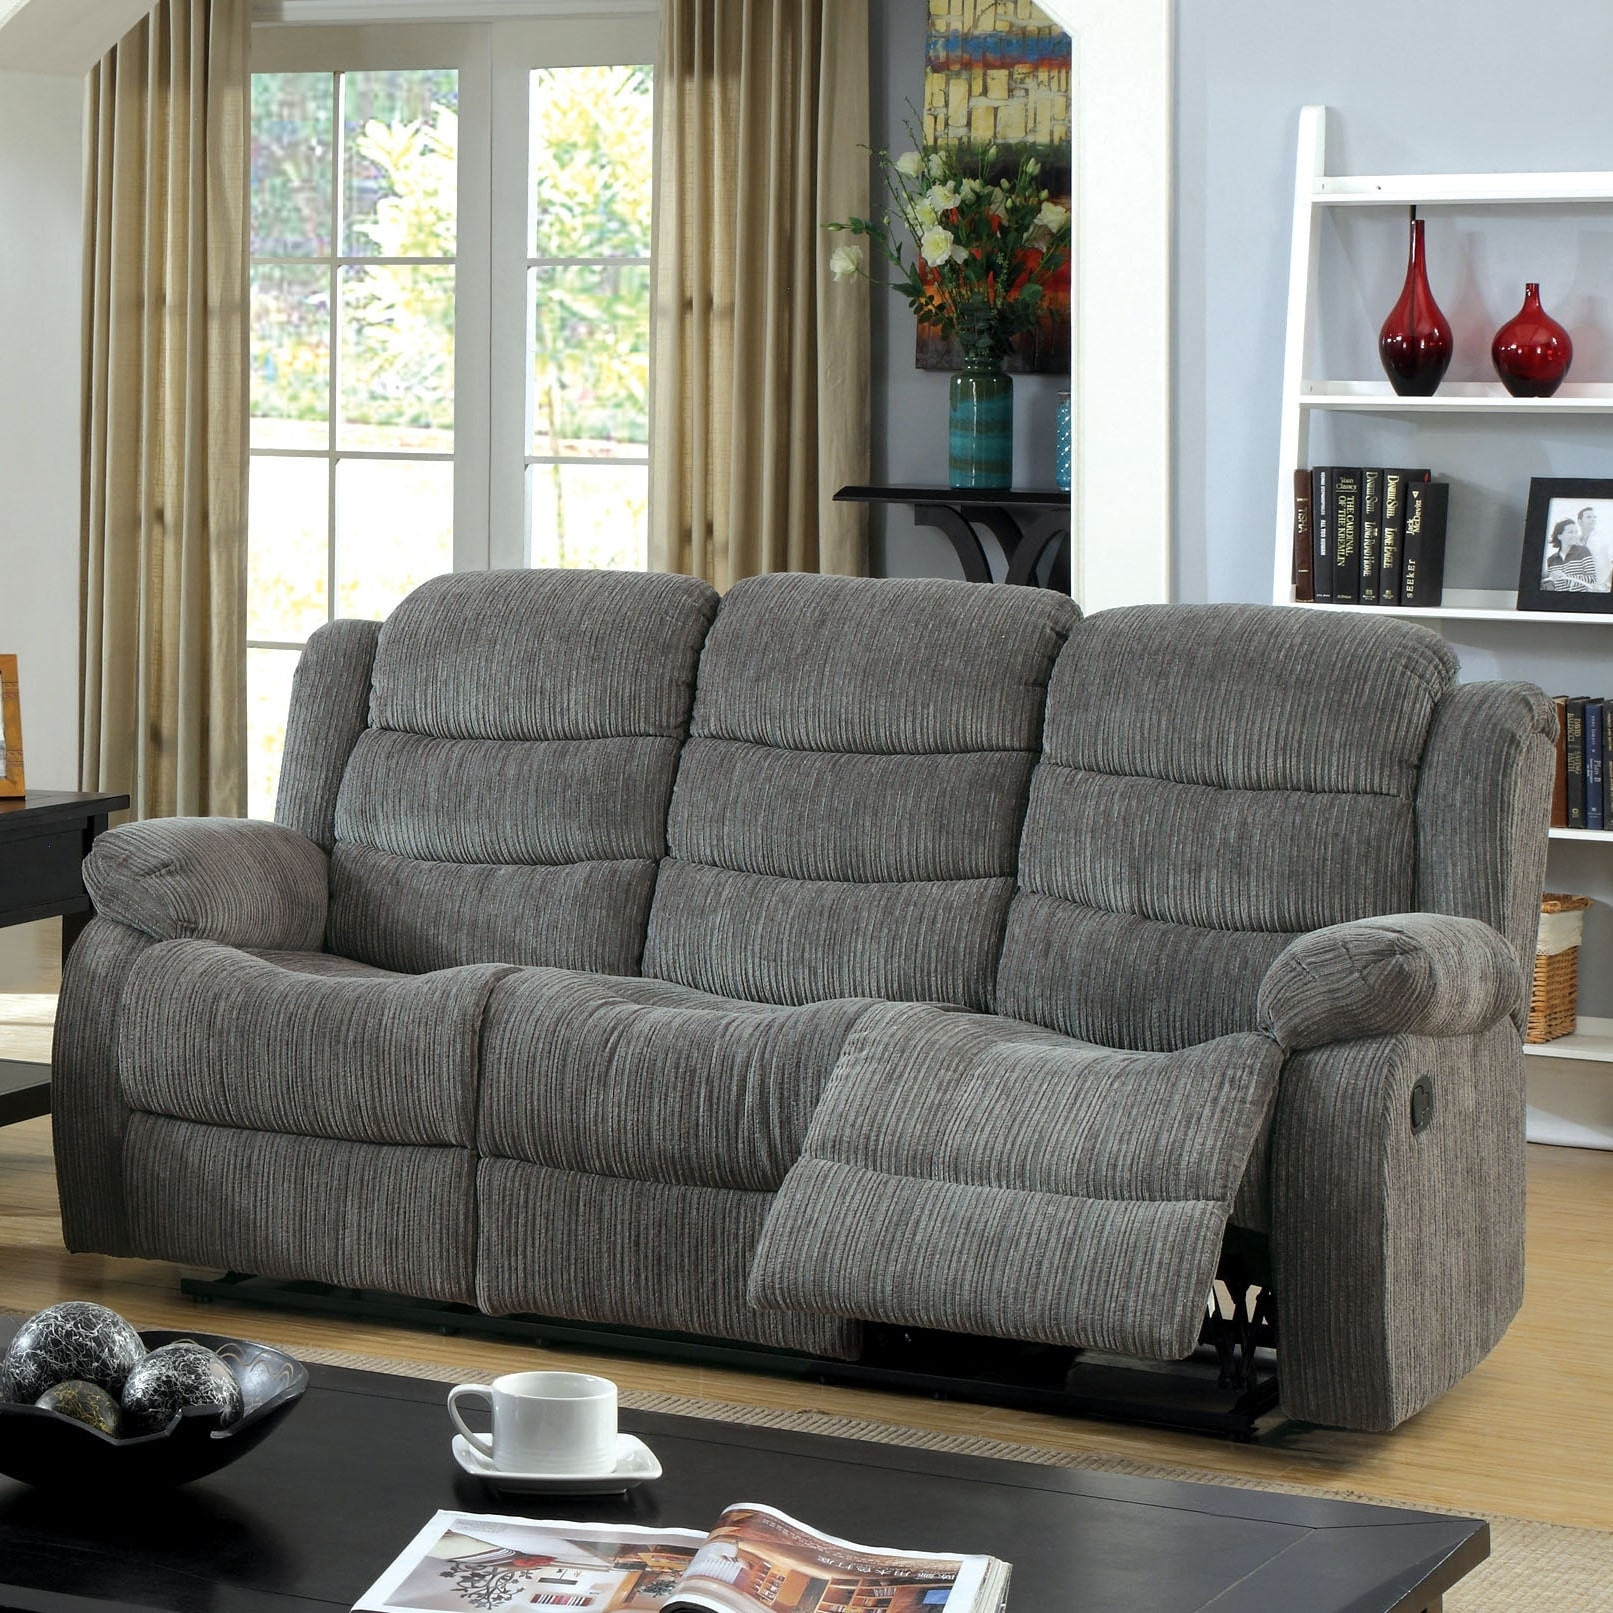 10 Unique American Furniture Warehouse Greensboro Nc | Home Regarding Sectional Sofas In Greensboro Nc (View 1 of 10)